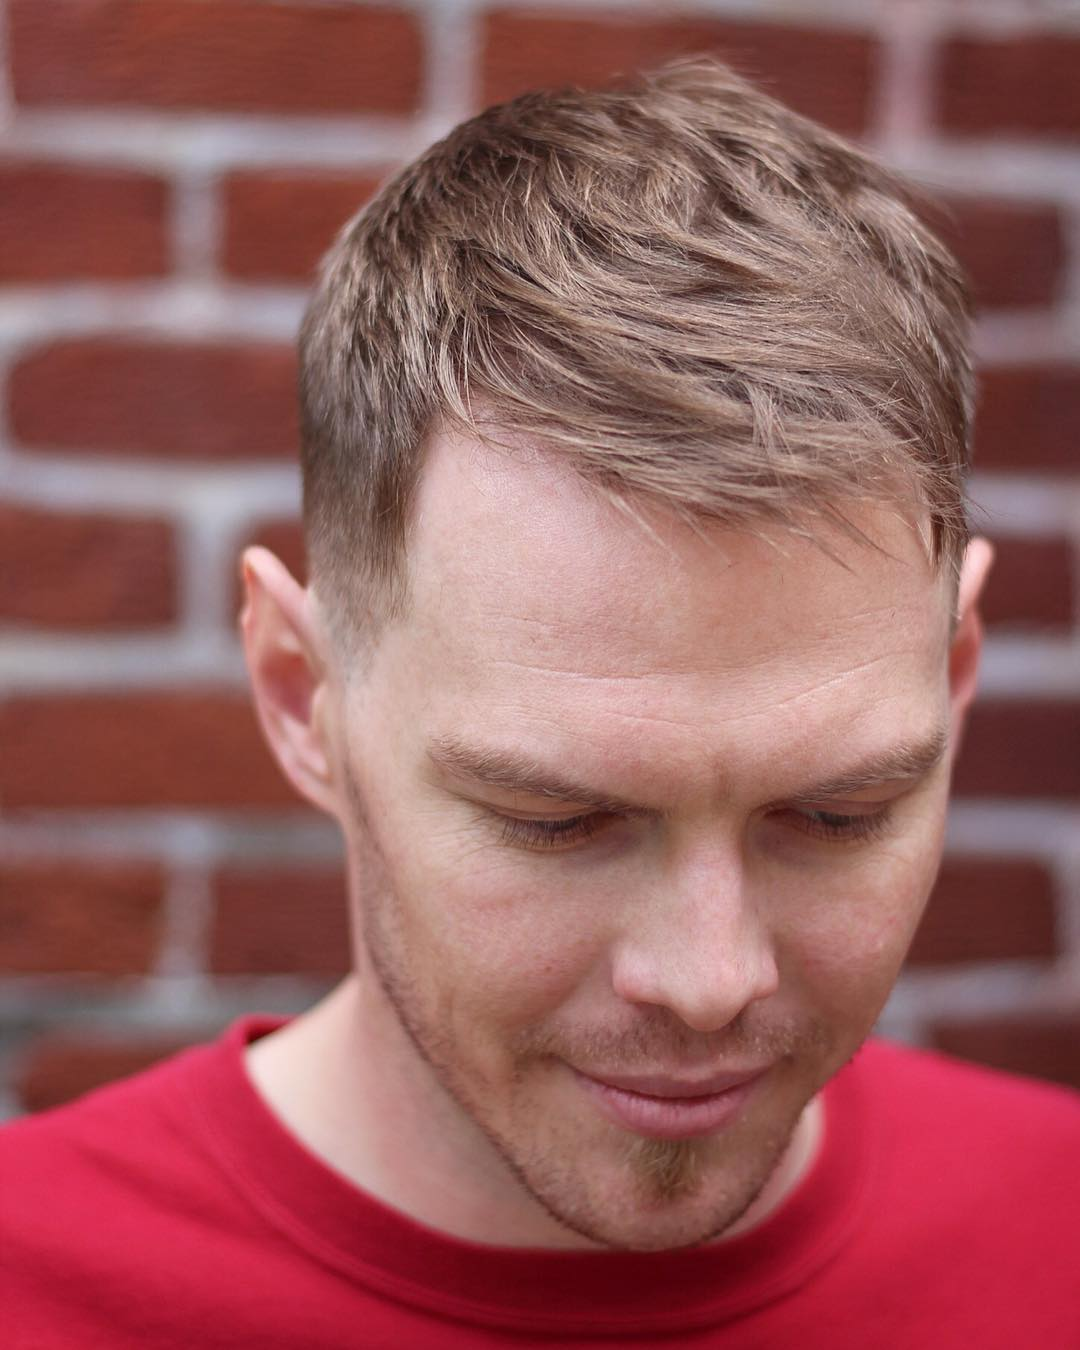 Short Hairstyles For Men Totally Cool 2020 Styles